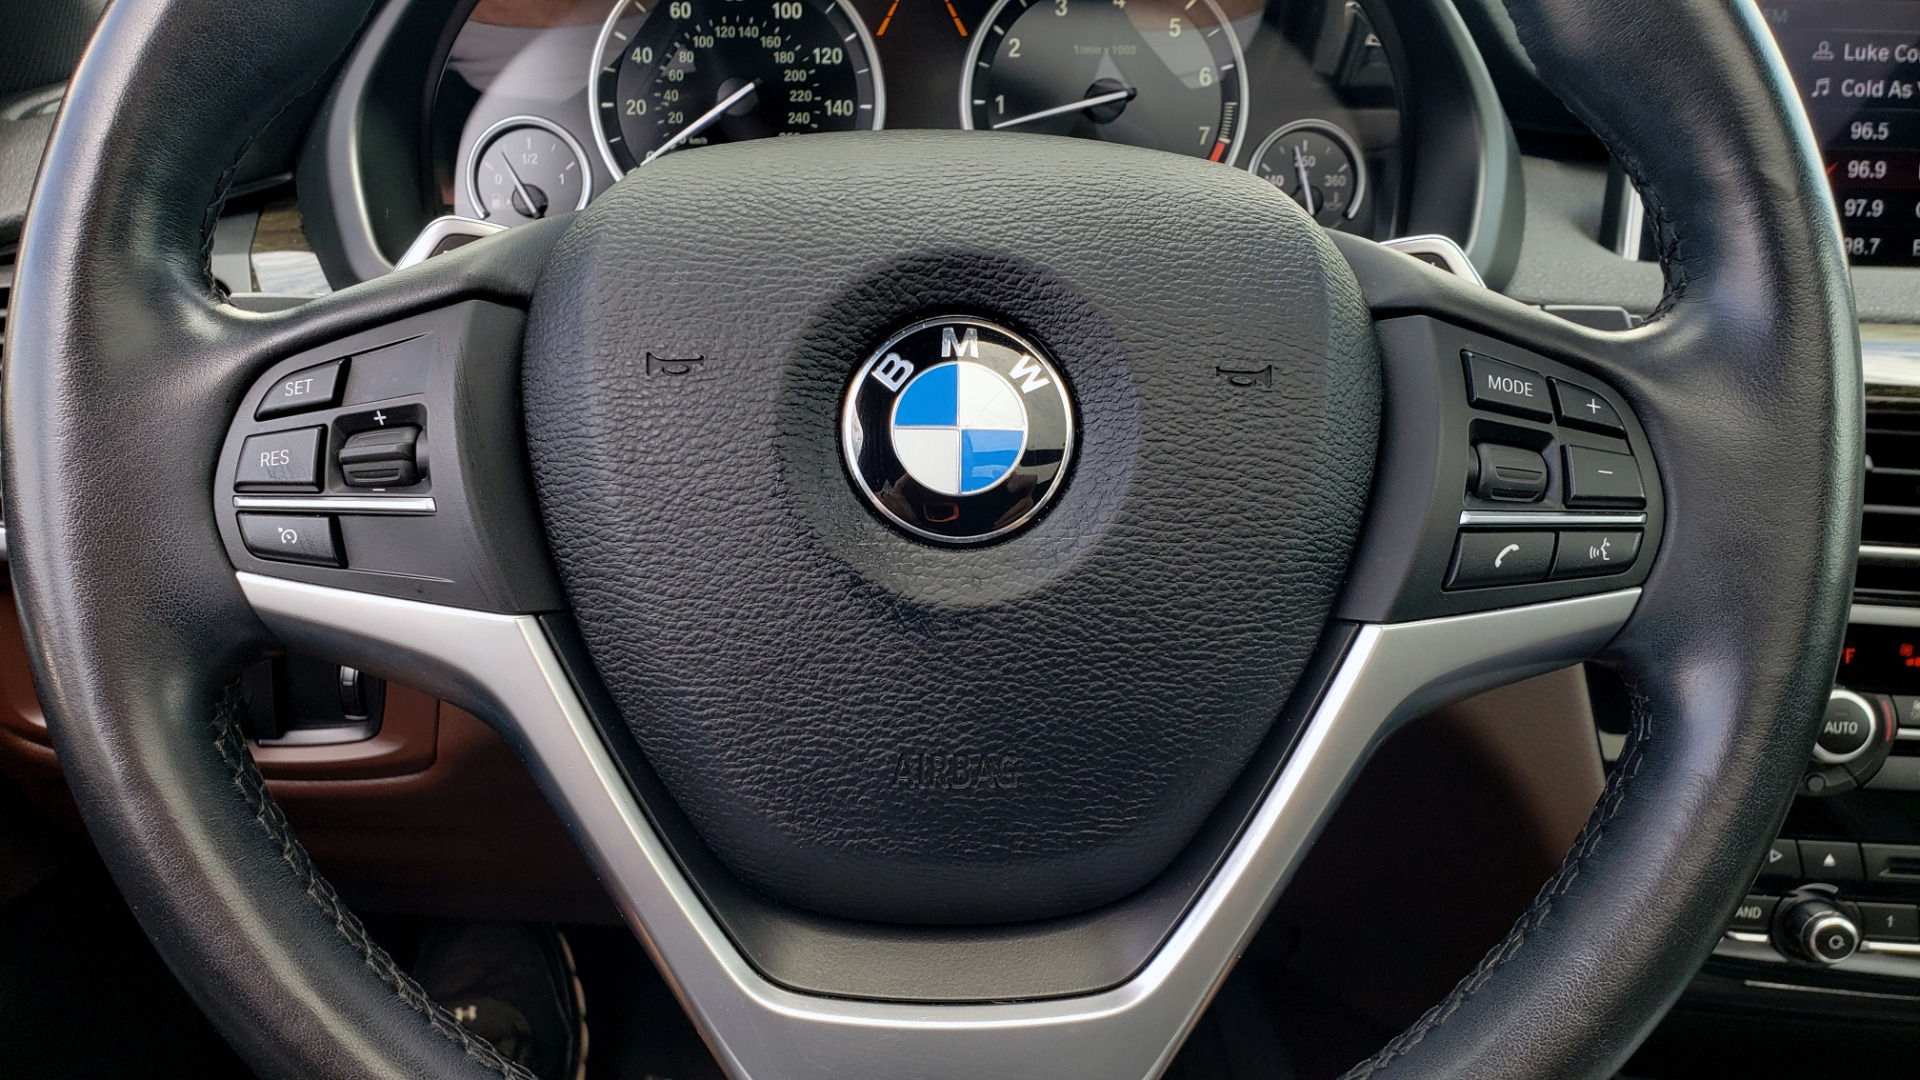 Used 2018 BMW X5 XDRIVE35I PREMIUM / LUXURY / DRVR ASST / HUD / LANE WARNING / REARVIEW for sale $43,695 at Formula Imports in Charlotte NC 28227 45